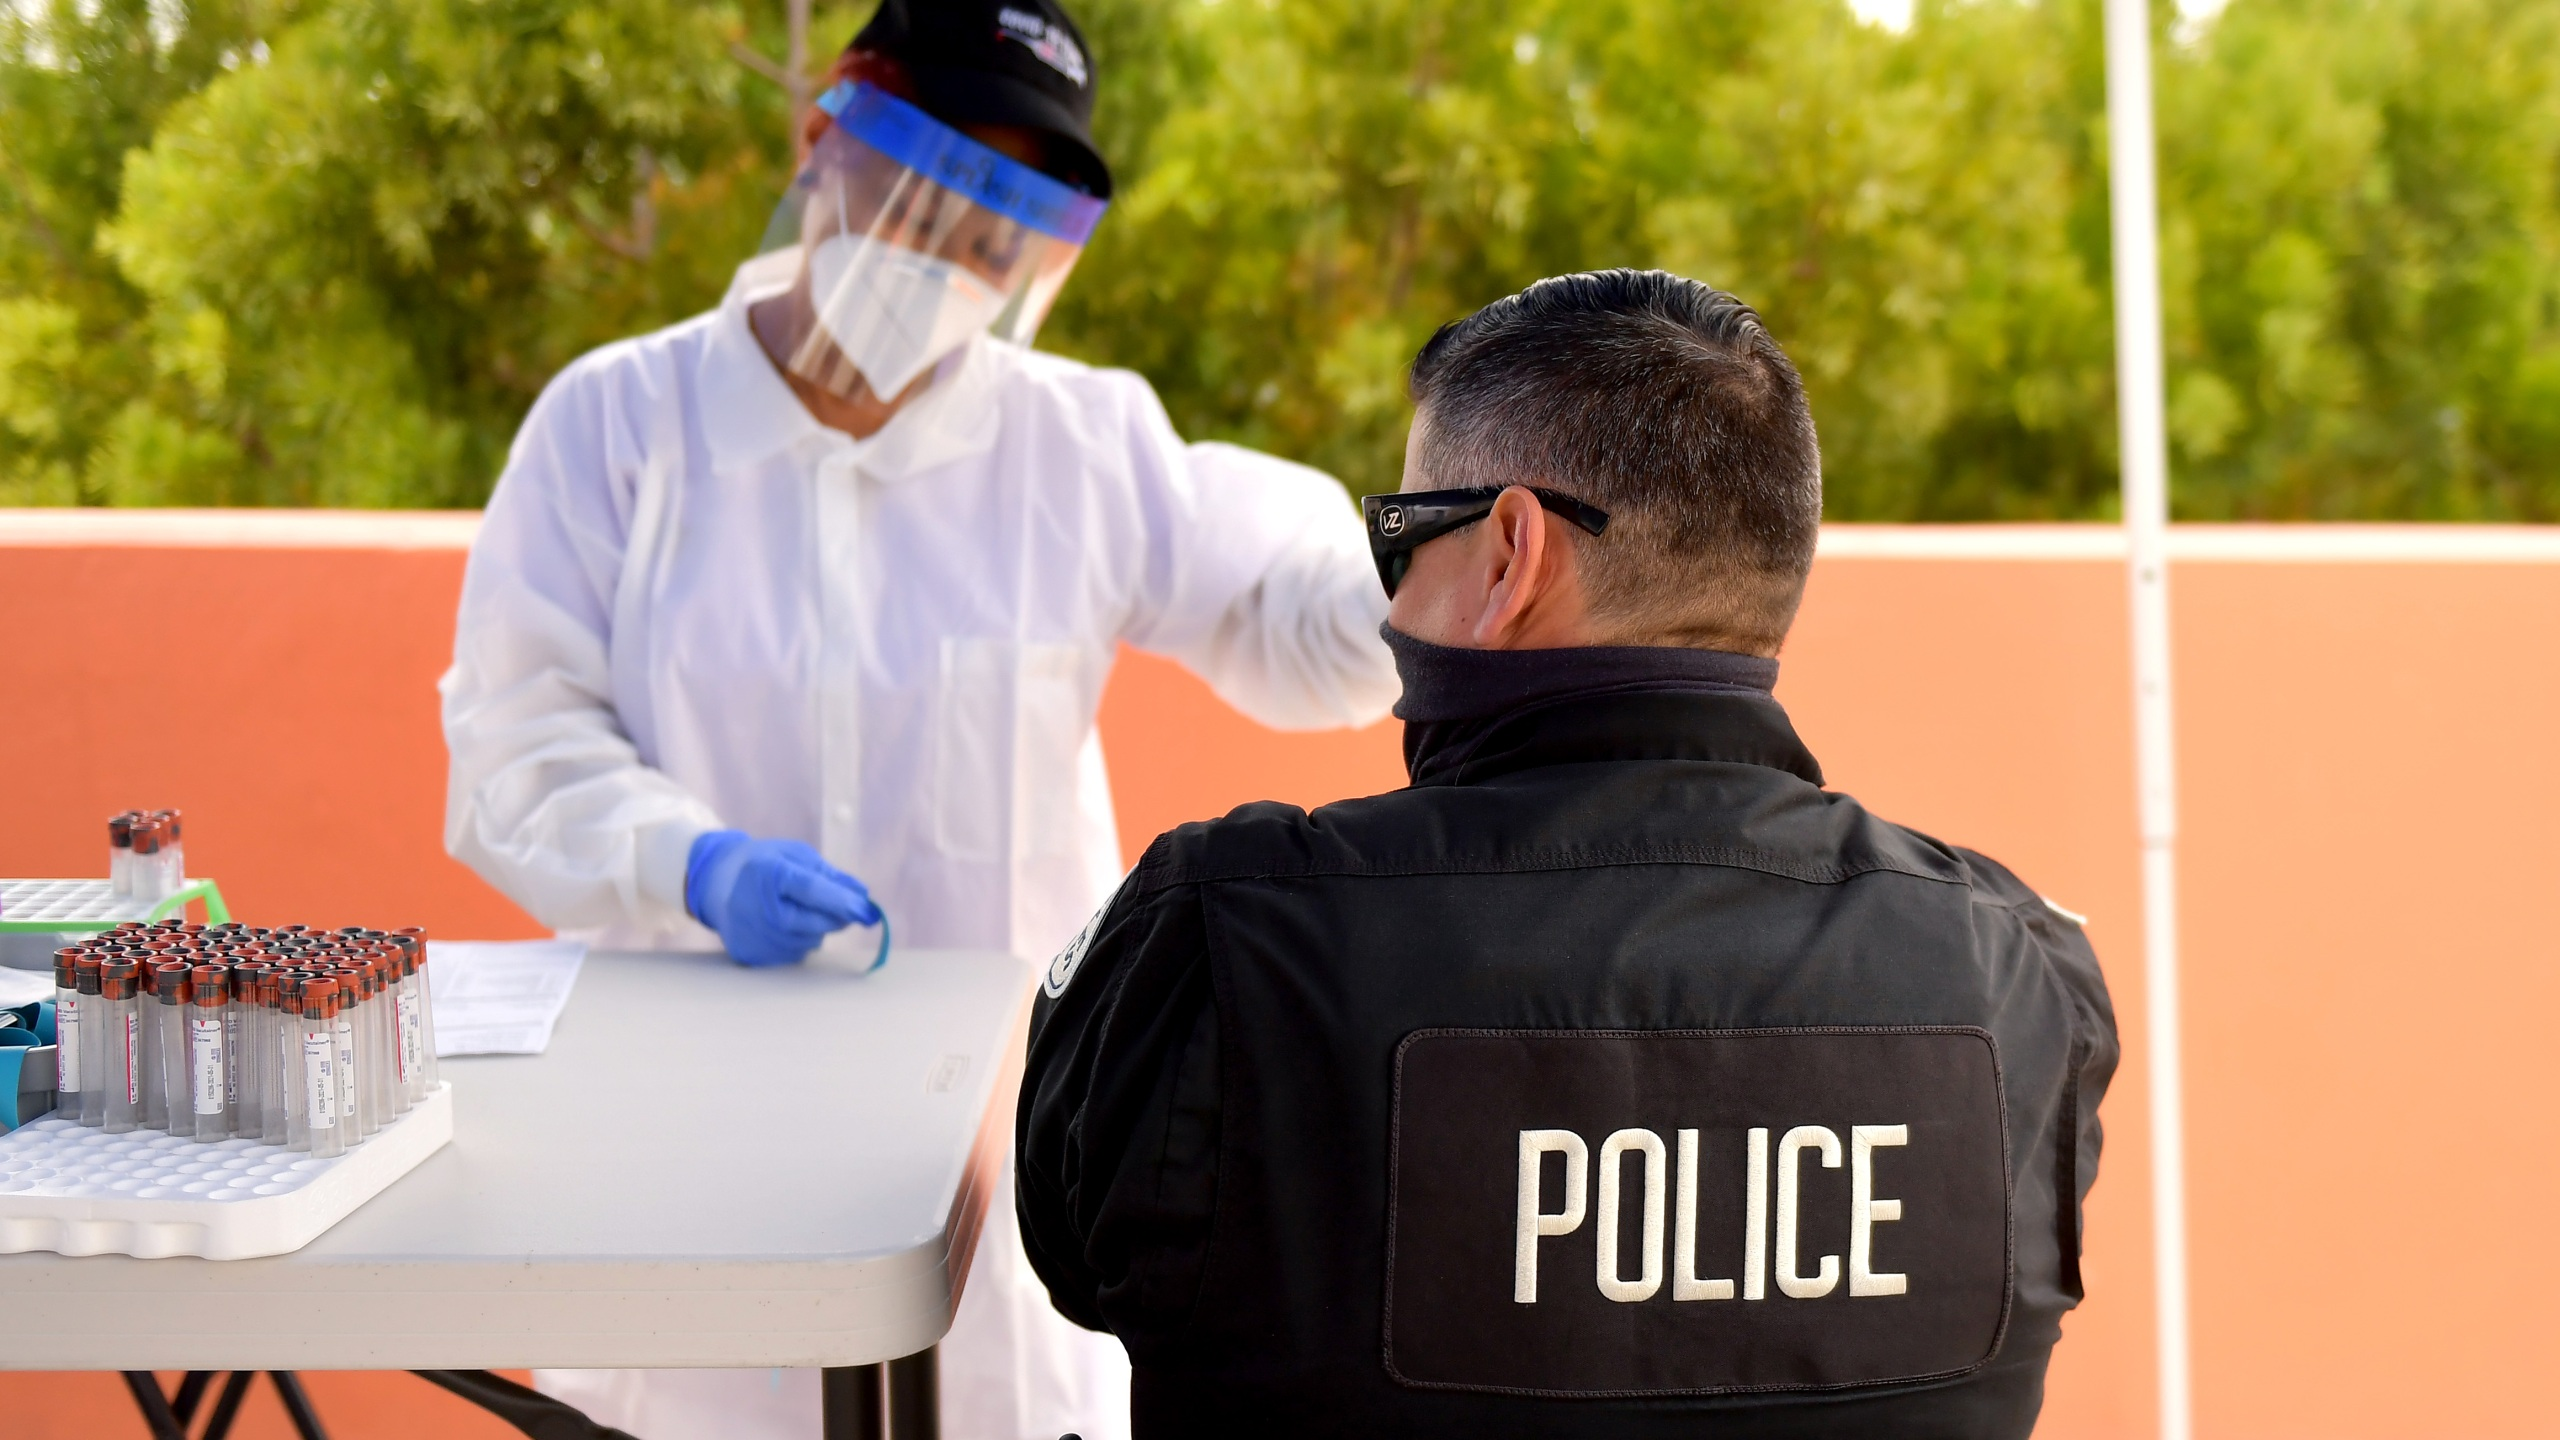 A police officer is seen at a free COVID-19 SARS-CoV-2 serology antibody testing community event, hosted by GUARDaHEART Foundation and Baldwin Hills Crenshaw Plaza, at Baldwin Hills Crenshaw Plaza on August 05, 2020 in Los Angeles, California. (Matt Winkelmeyer/Getty Images)